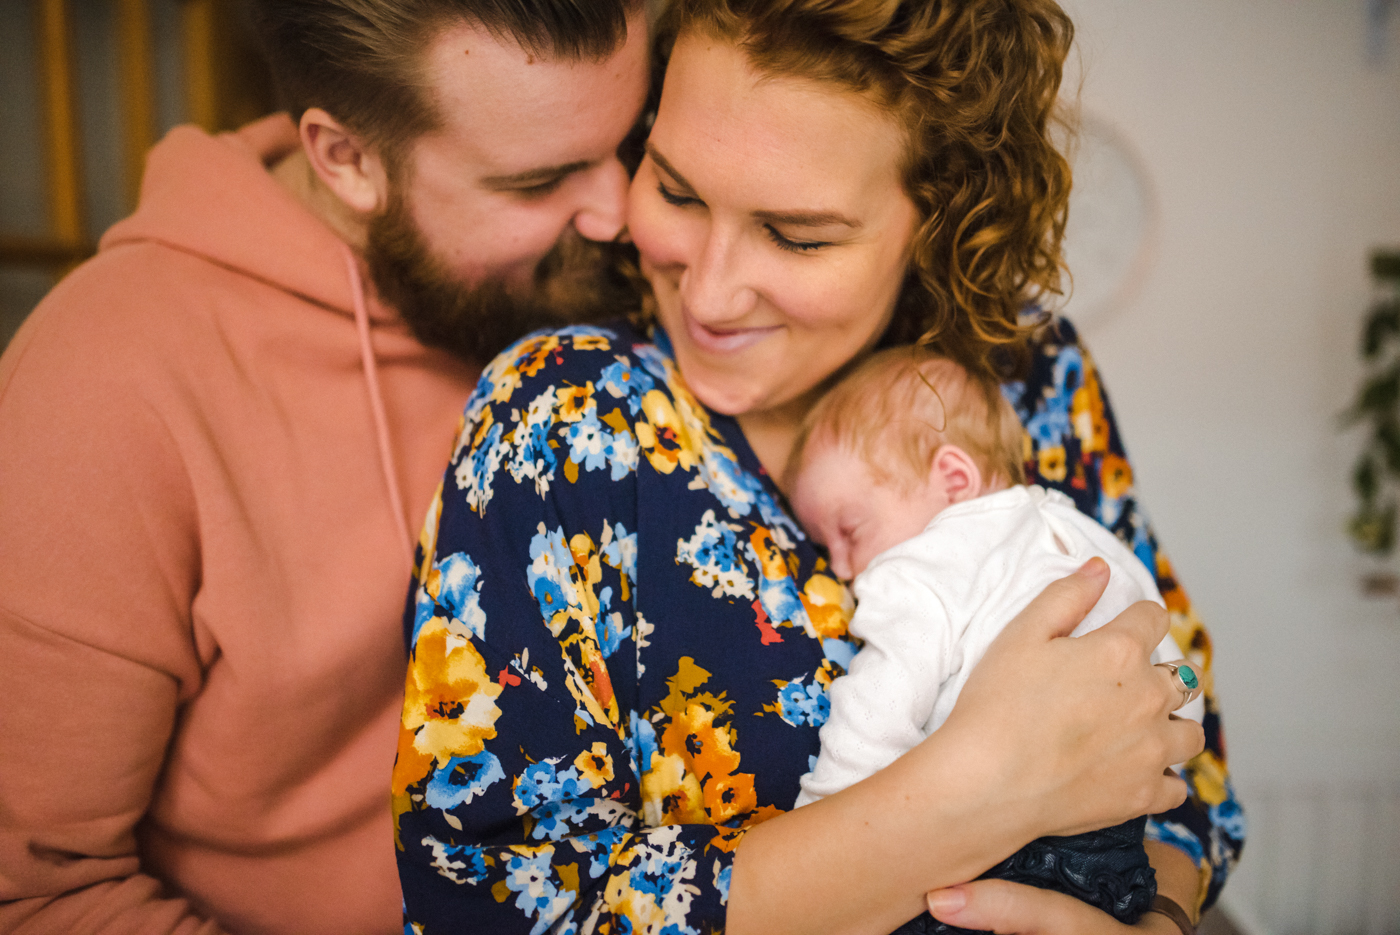 The Stipancic Family At Home Newborn Session Baby 1 Month Old Montreal Quebec Hamilton Ontario Aidan Hennebry Hush Hush Photography & Film Adelaide Pearle-13.jpg